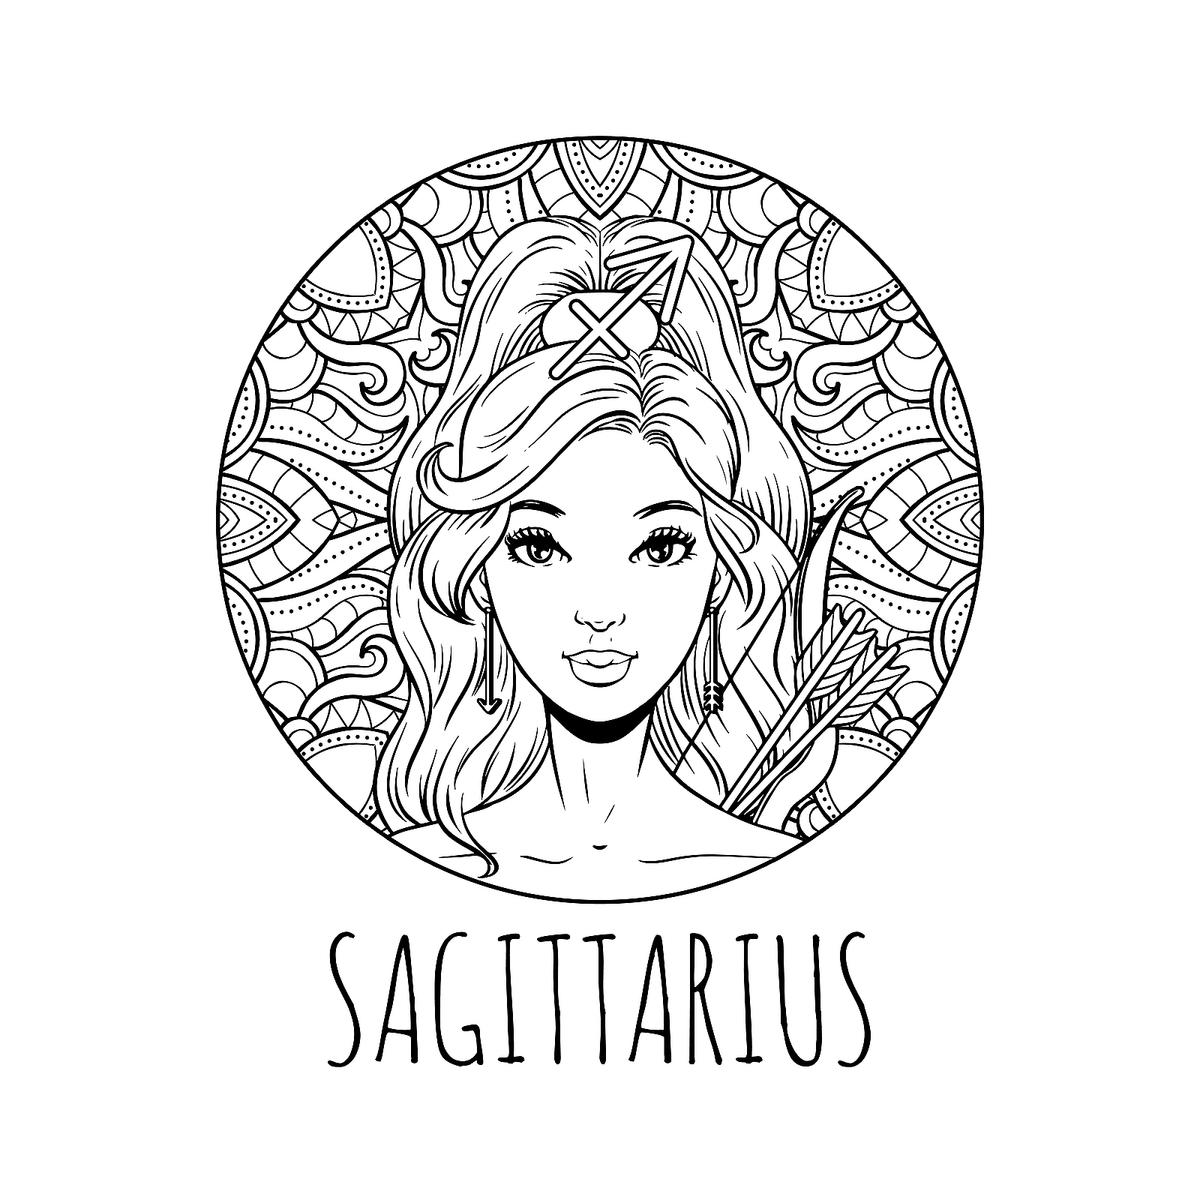 zodiac coloring pages zodiac signs coloring pages coloring home zodiac pages coloring